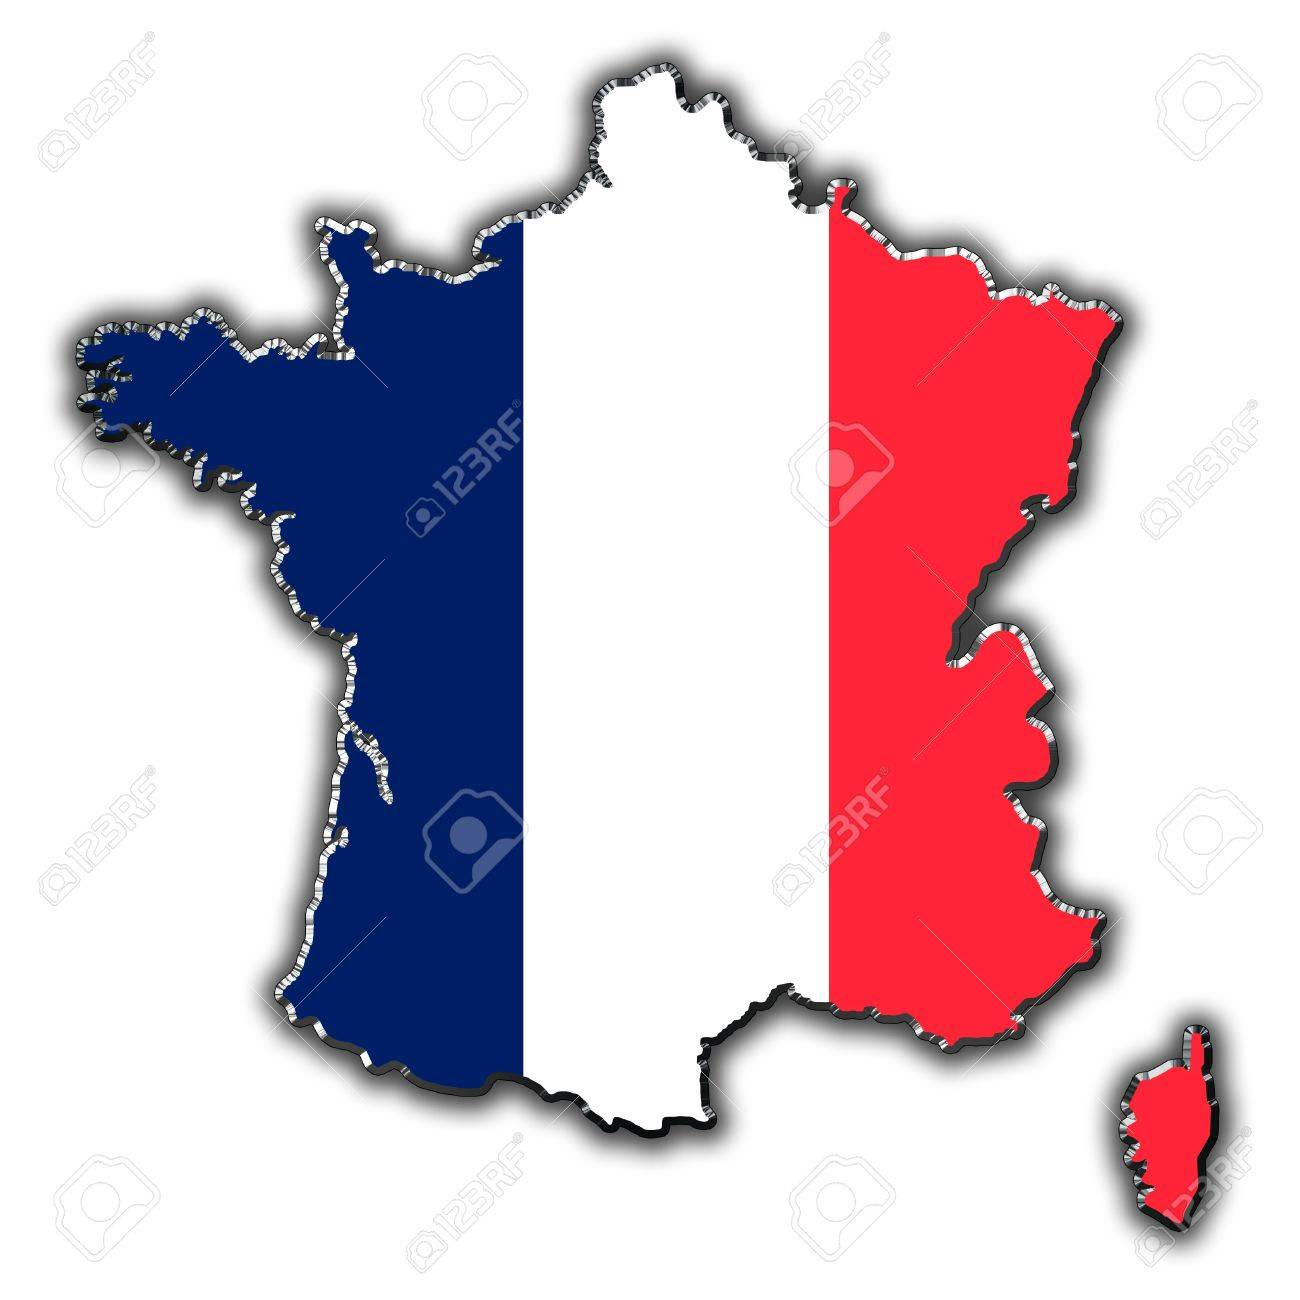 Outline Map Of France Covered In French Flag Stock Photo Picture And Royalty Free Image Image 16056293